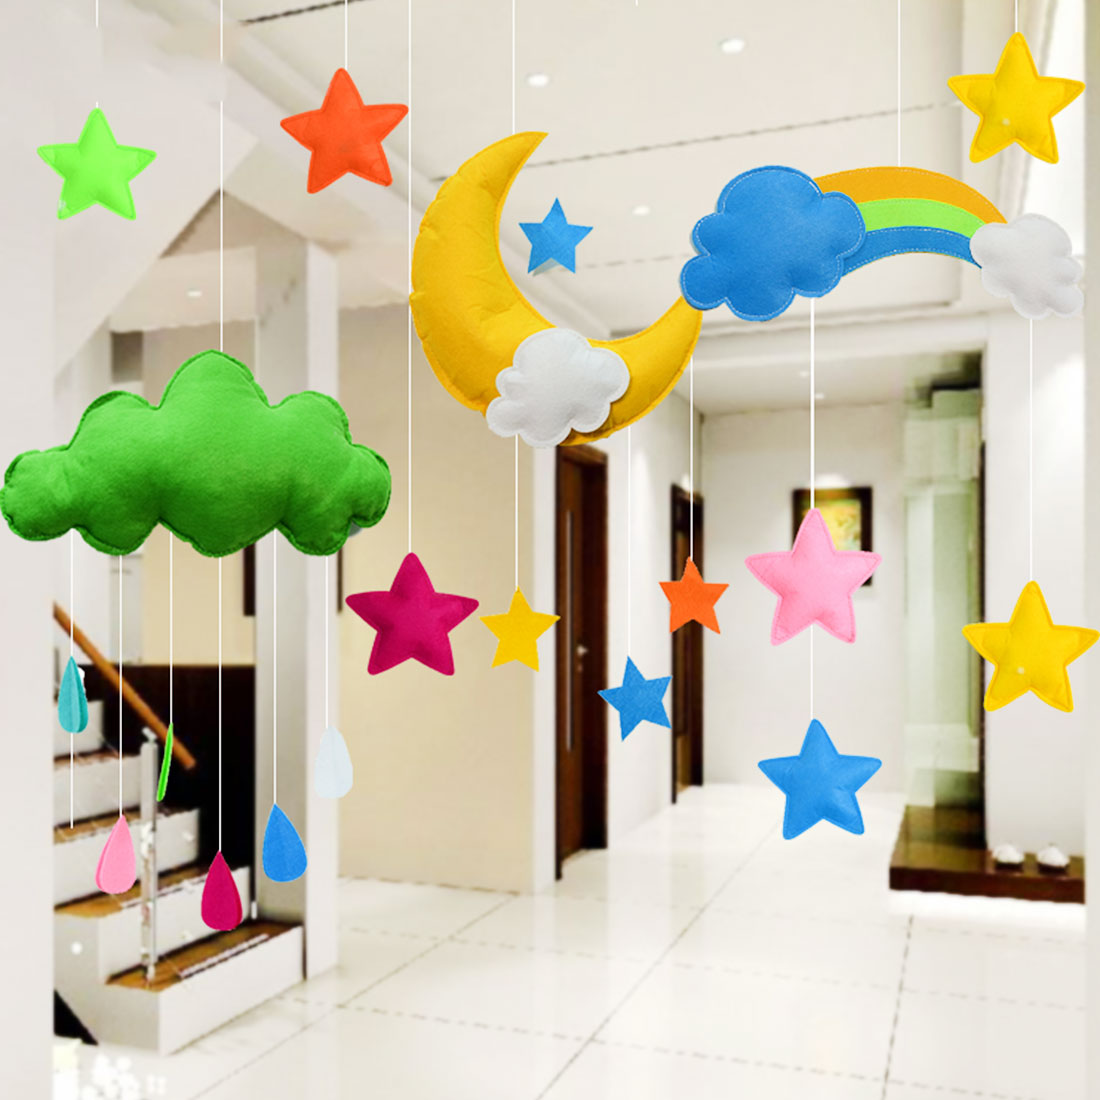 Scandinavian Style Kids Room: Felt Cloud Kids Room Decoration Cloud Scandinavian Style